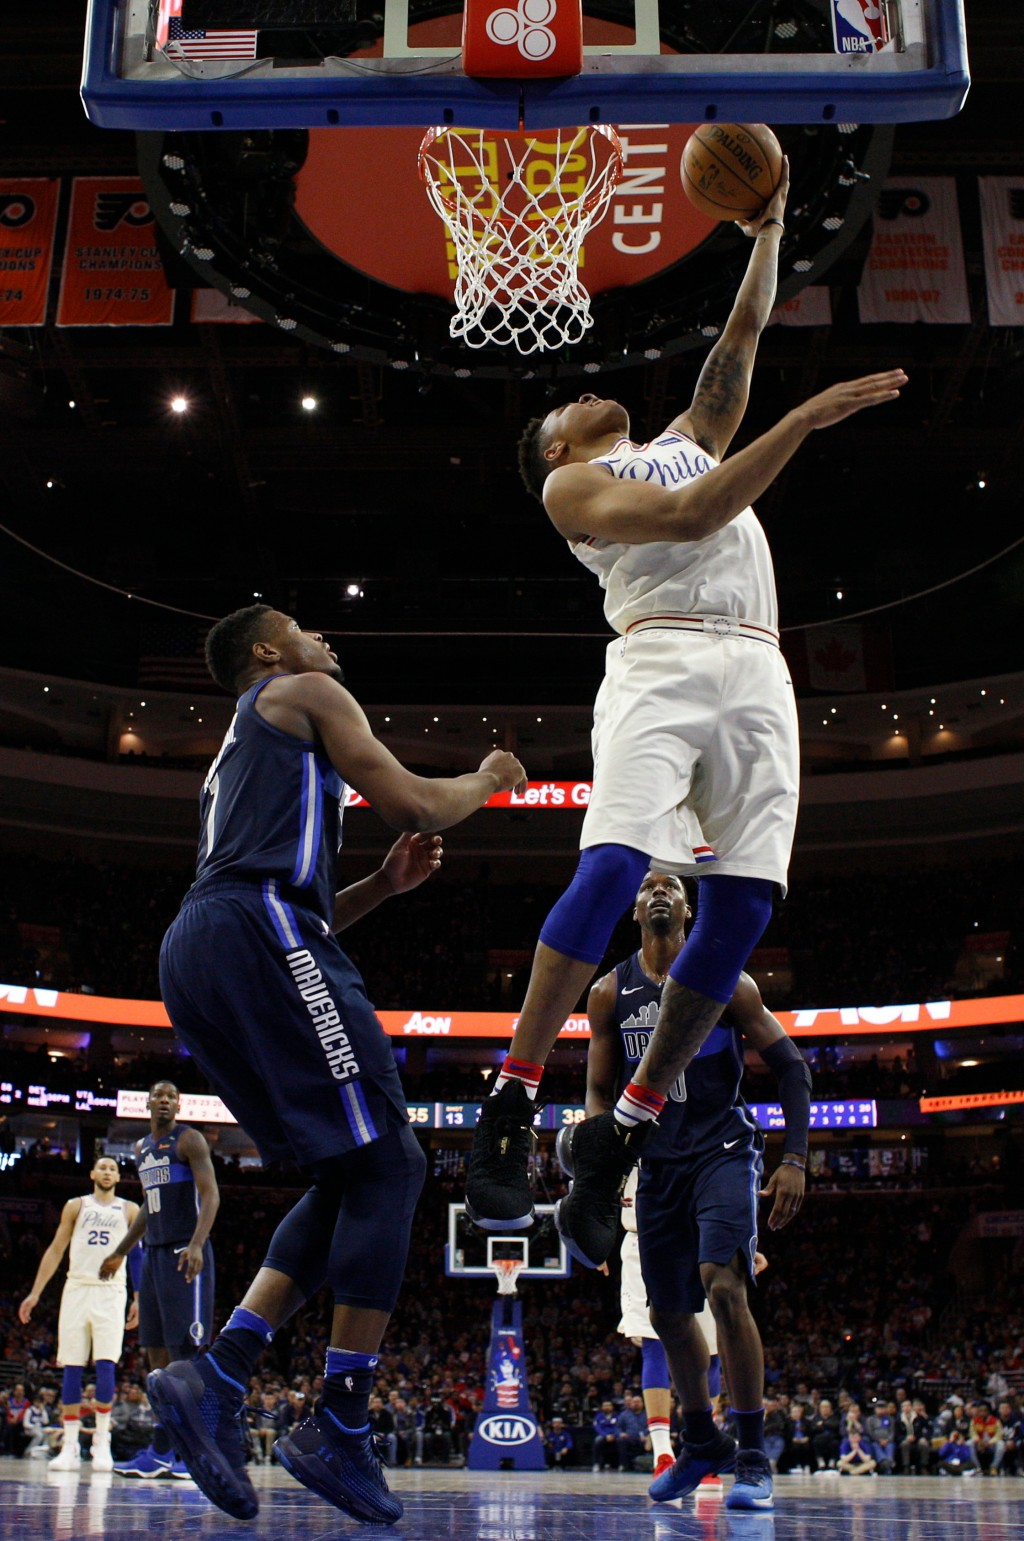 Philadelphia 76ers' Markelle Fultz, right, shoots with Dallas Mavericks' Dennis Smith Jr., left, defending during the first half of an NBA basketball ...